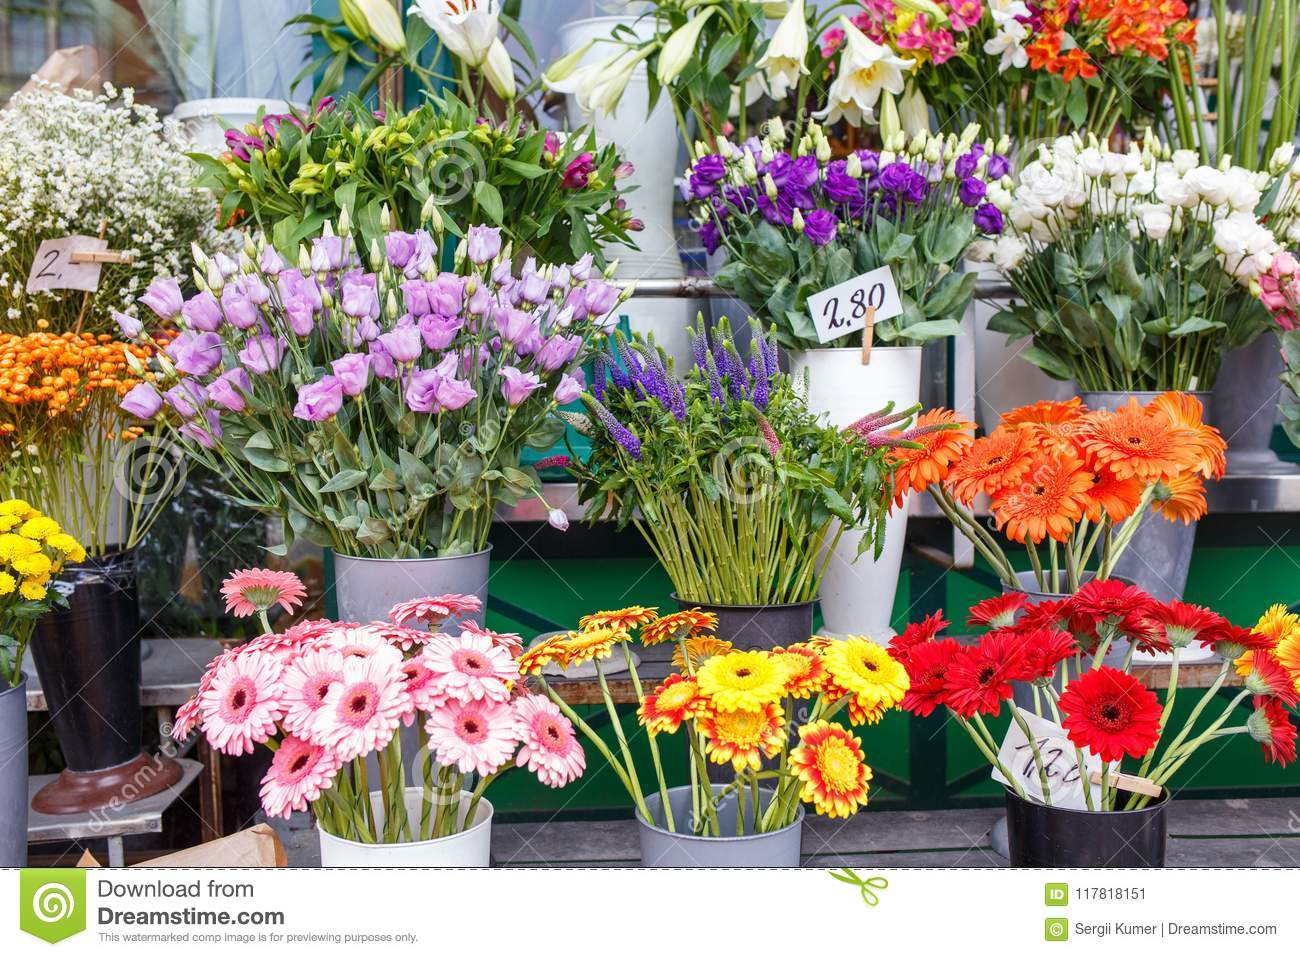 Outdoor Flower Shop With Roses Peonies And Lilies Stock Image